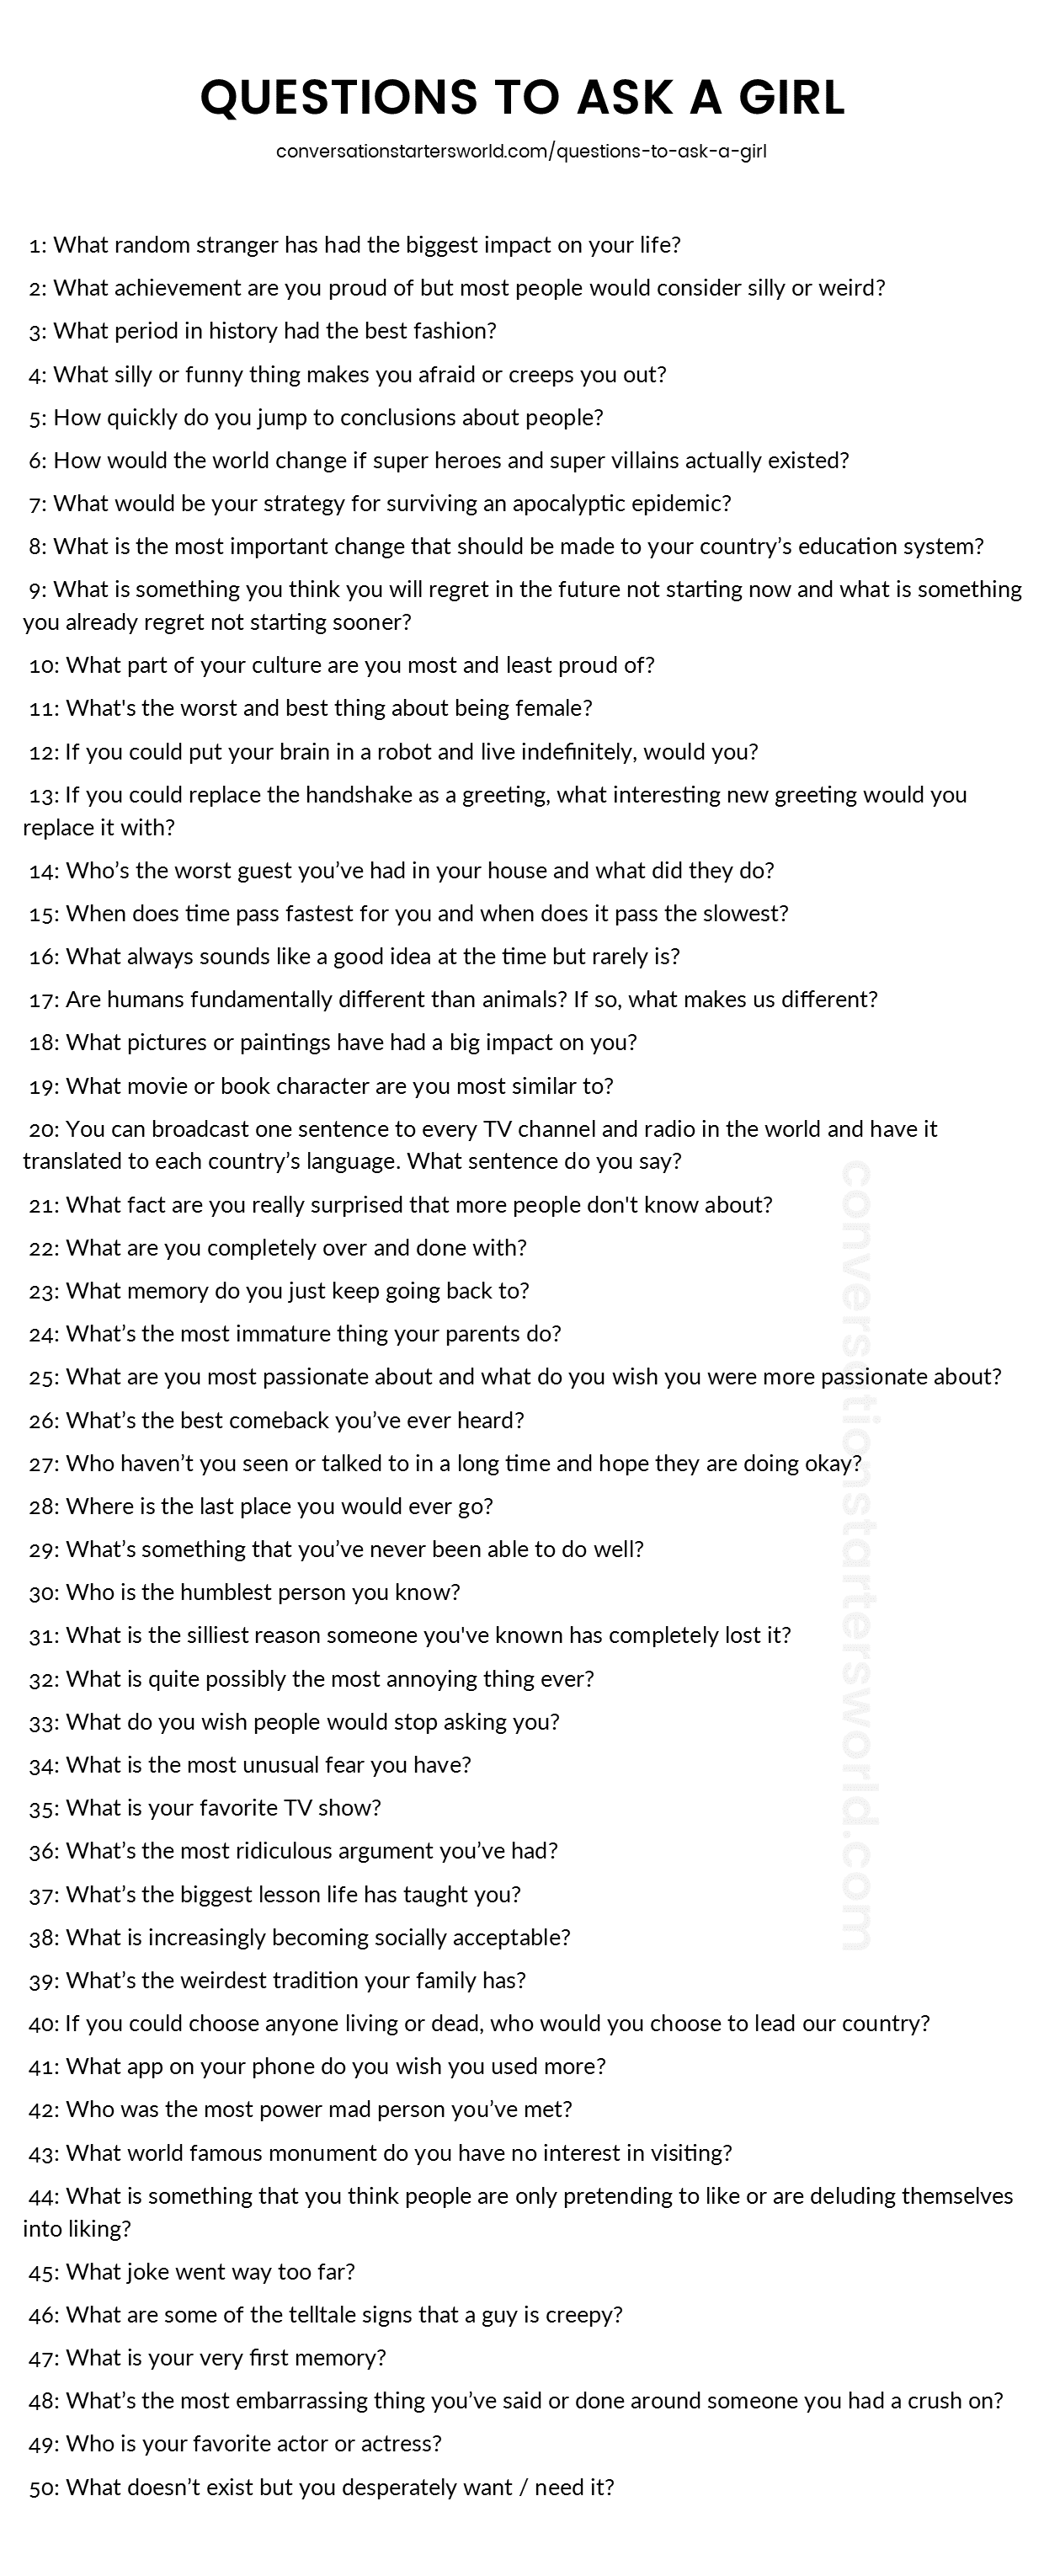 List of questions to ask a girl